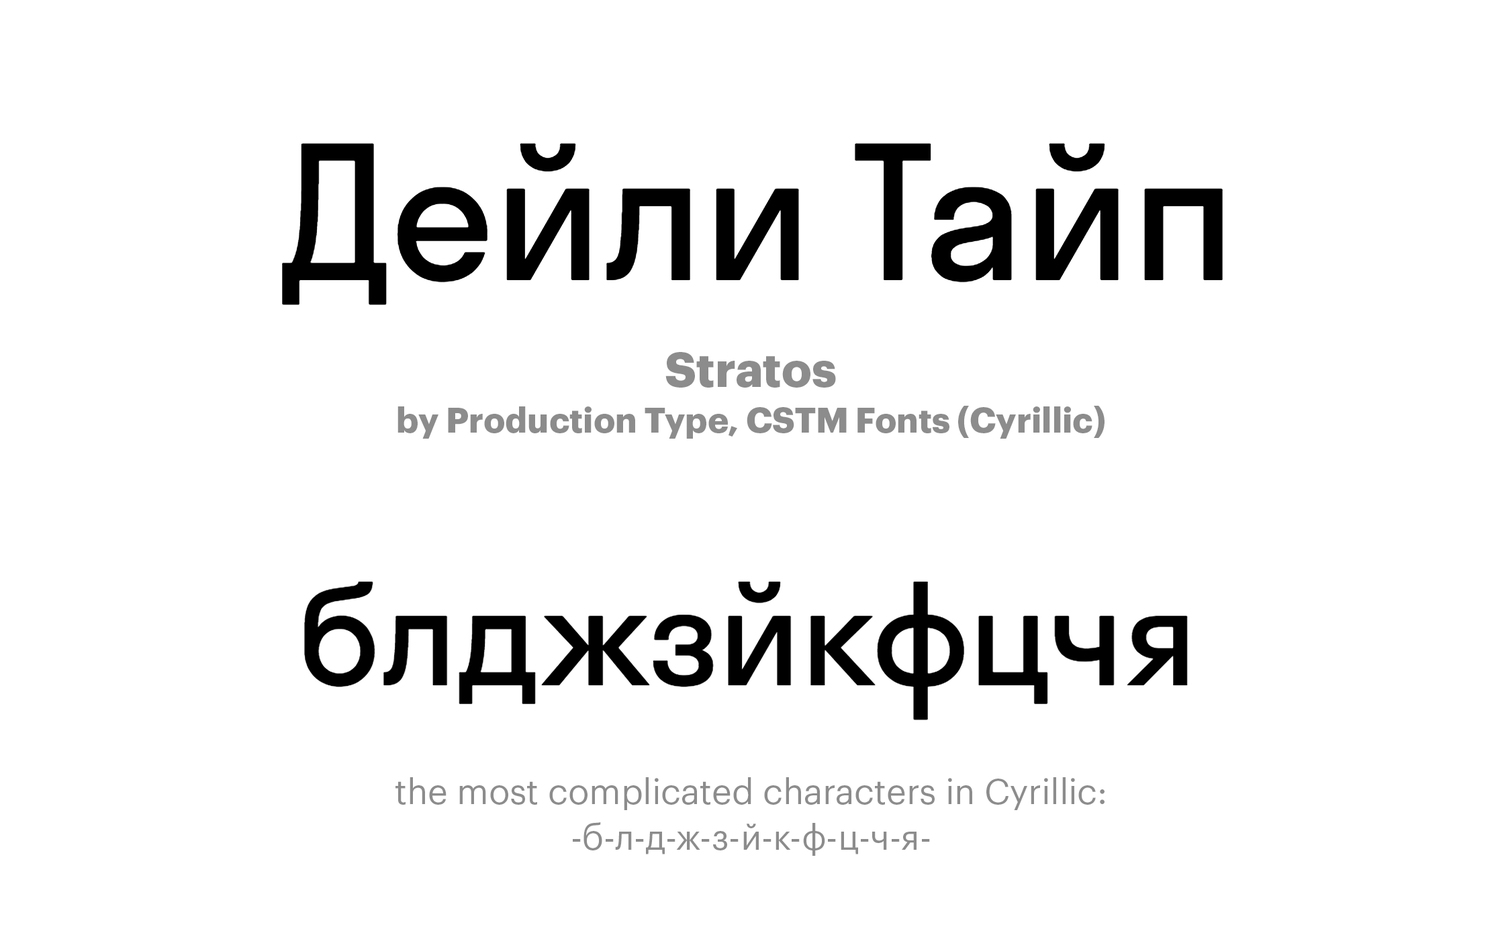 Stratos-by-Production-Type,-CSTM-Fonts-(Cyrillic)